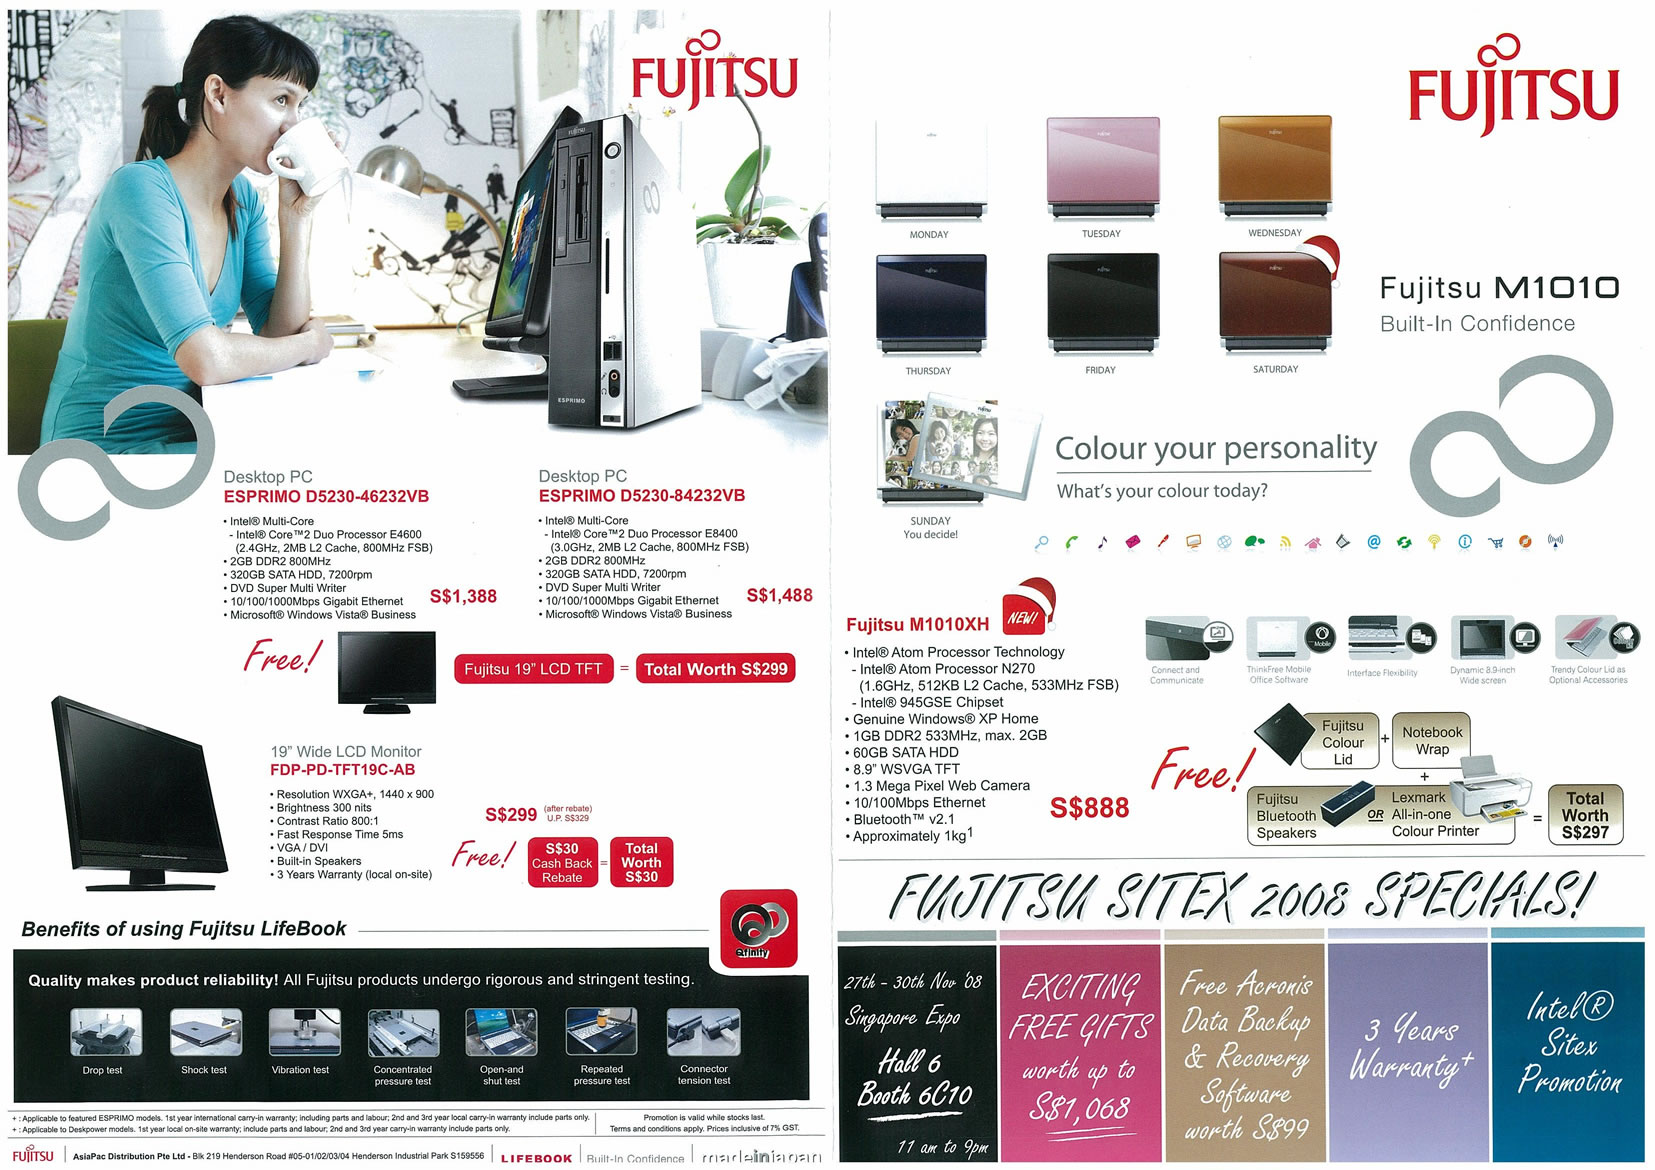 Sitex 2008 price list image brochure of Fujitsu 01 Page 1 - Vr-zone Tclong